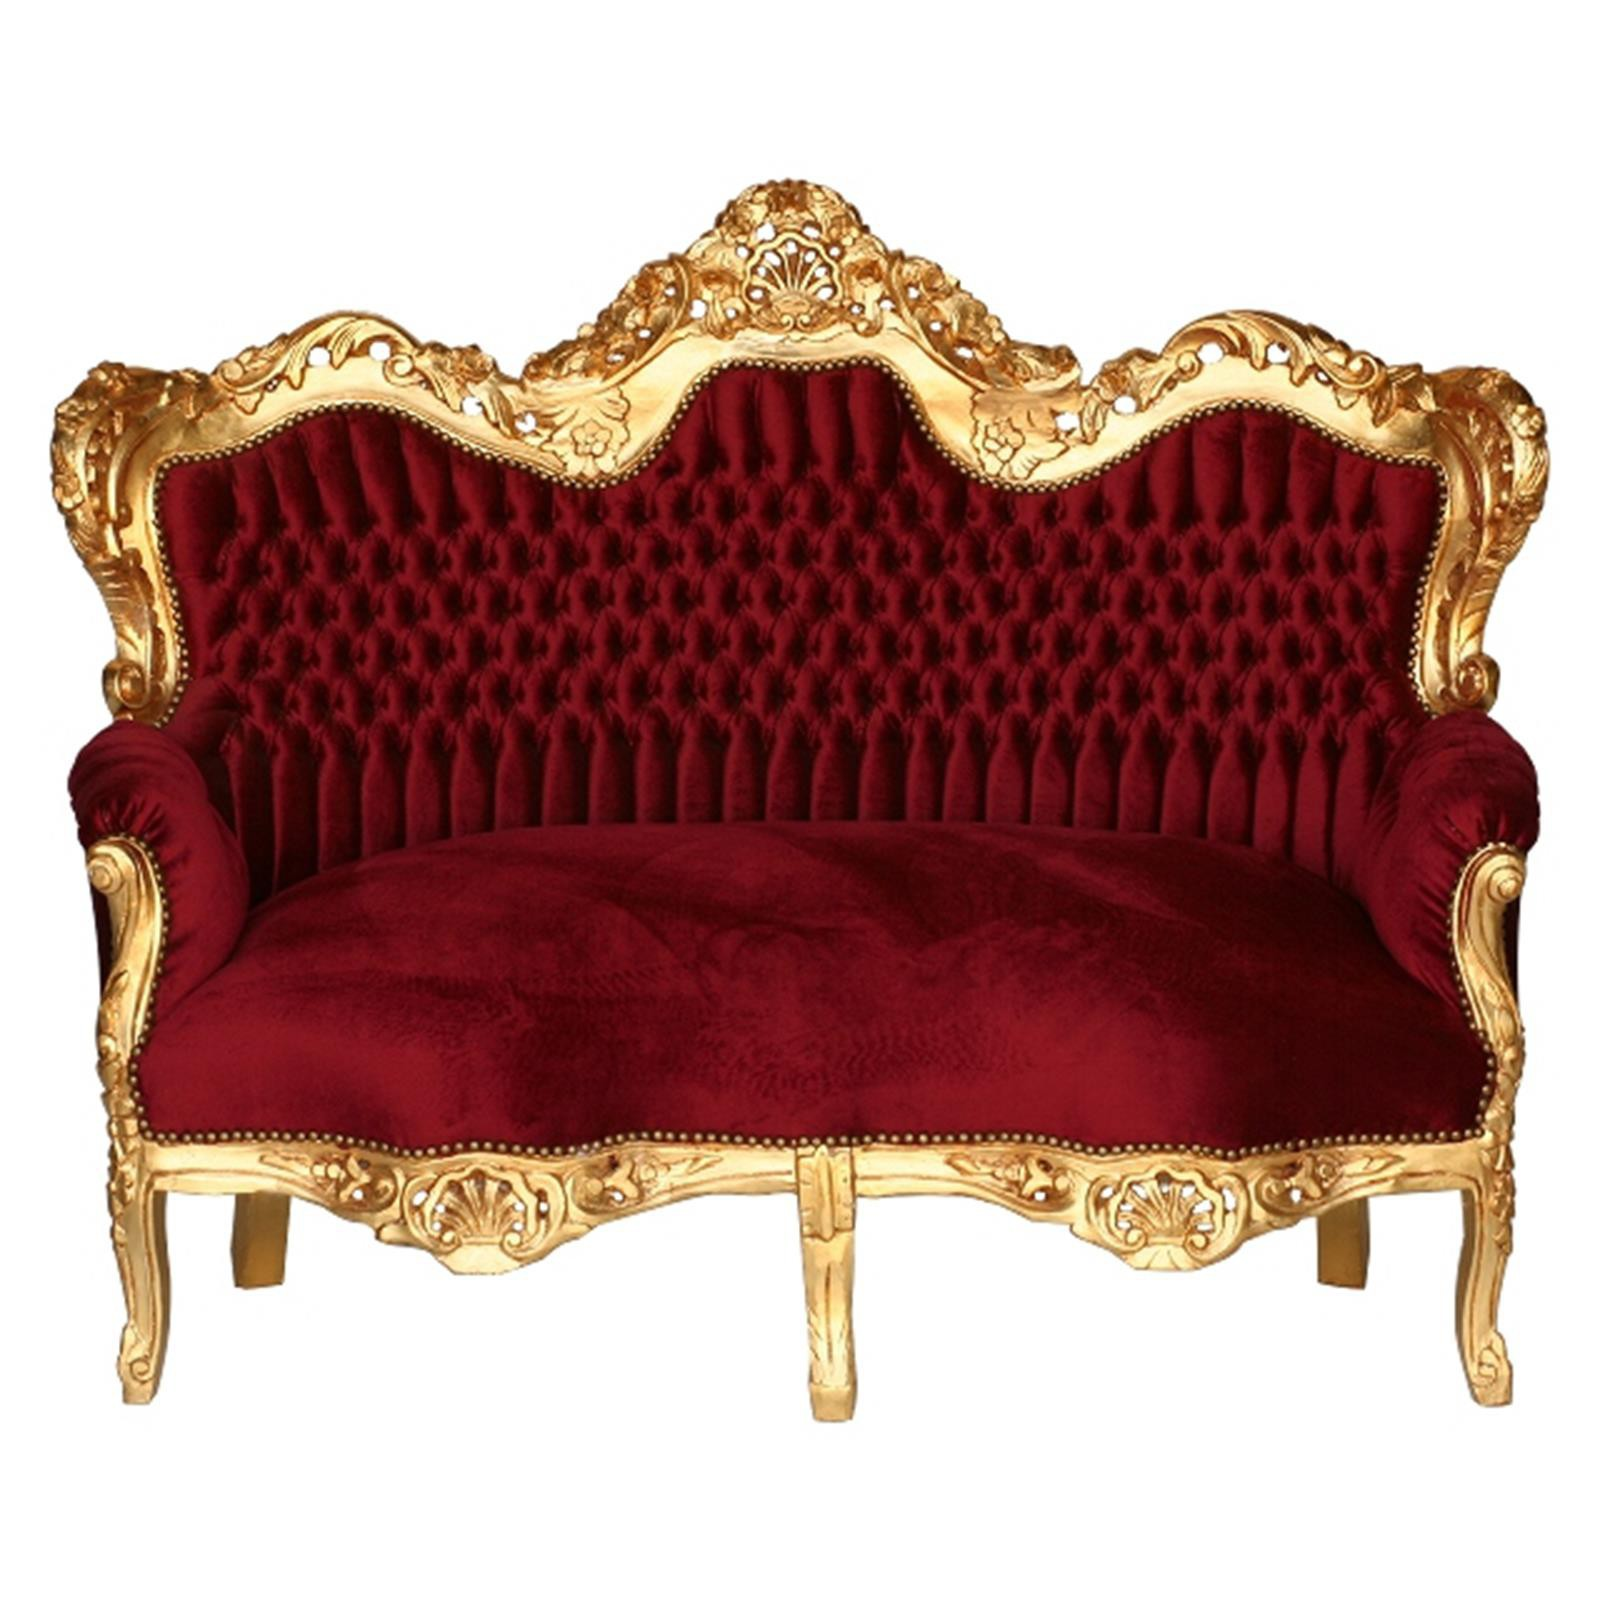 Merveilleux 3 Seater Sofa Deep Red Velvet Golden Carved Wood Frame U2013 Bild 1